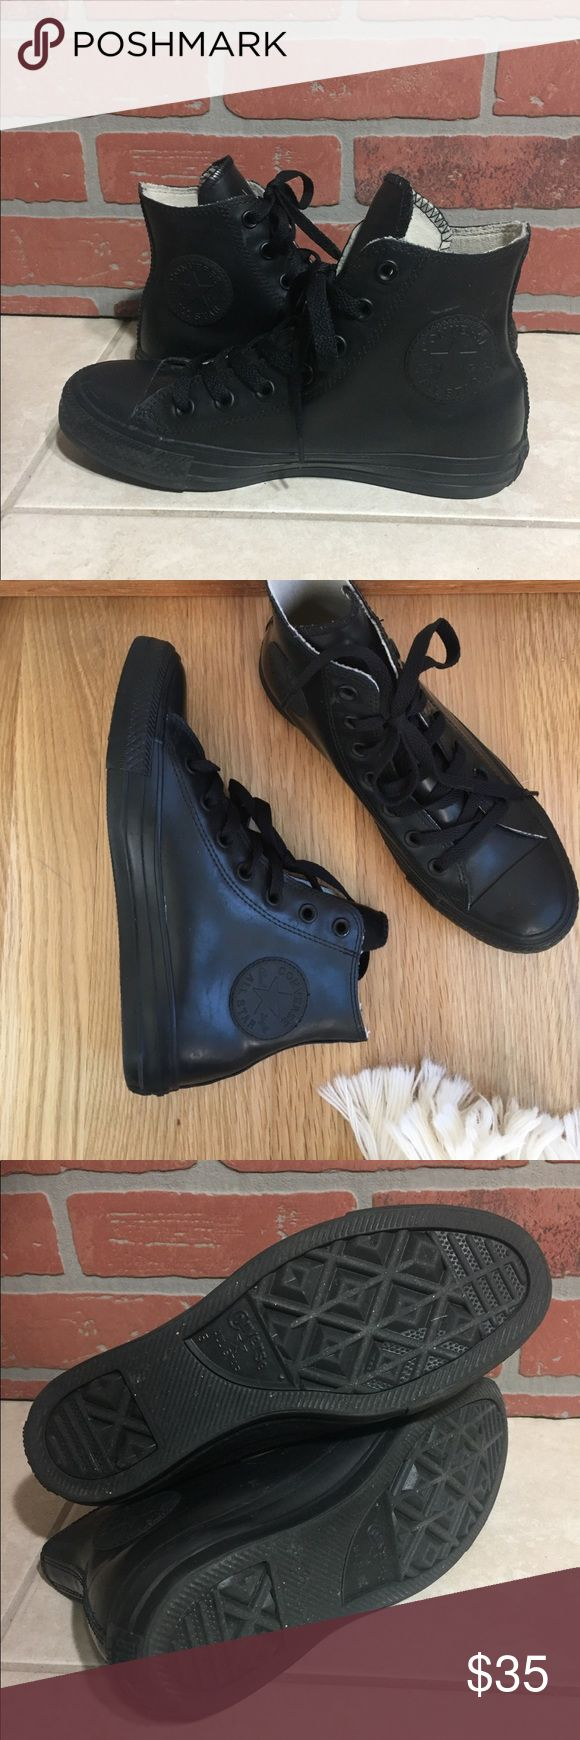 Black Rubber high top Chuck Taylor sneakers Very comfy & chic water proof rubber chucks. Work a handful of times. Size women 7 Men 5 Converse Shoes Sneakers